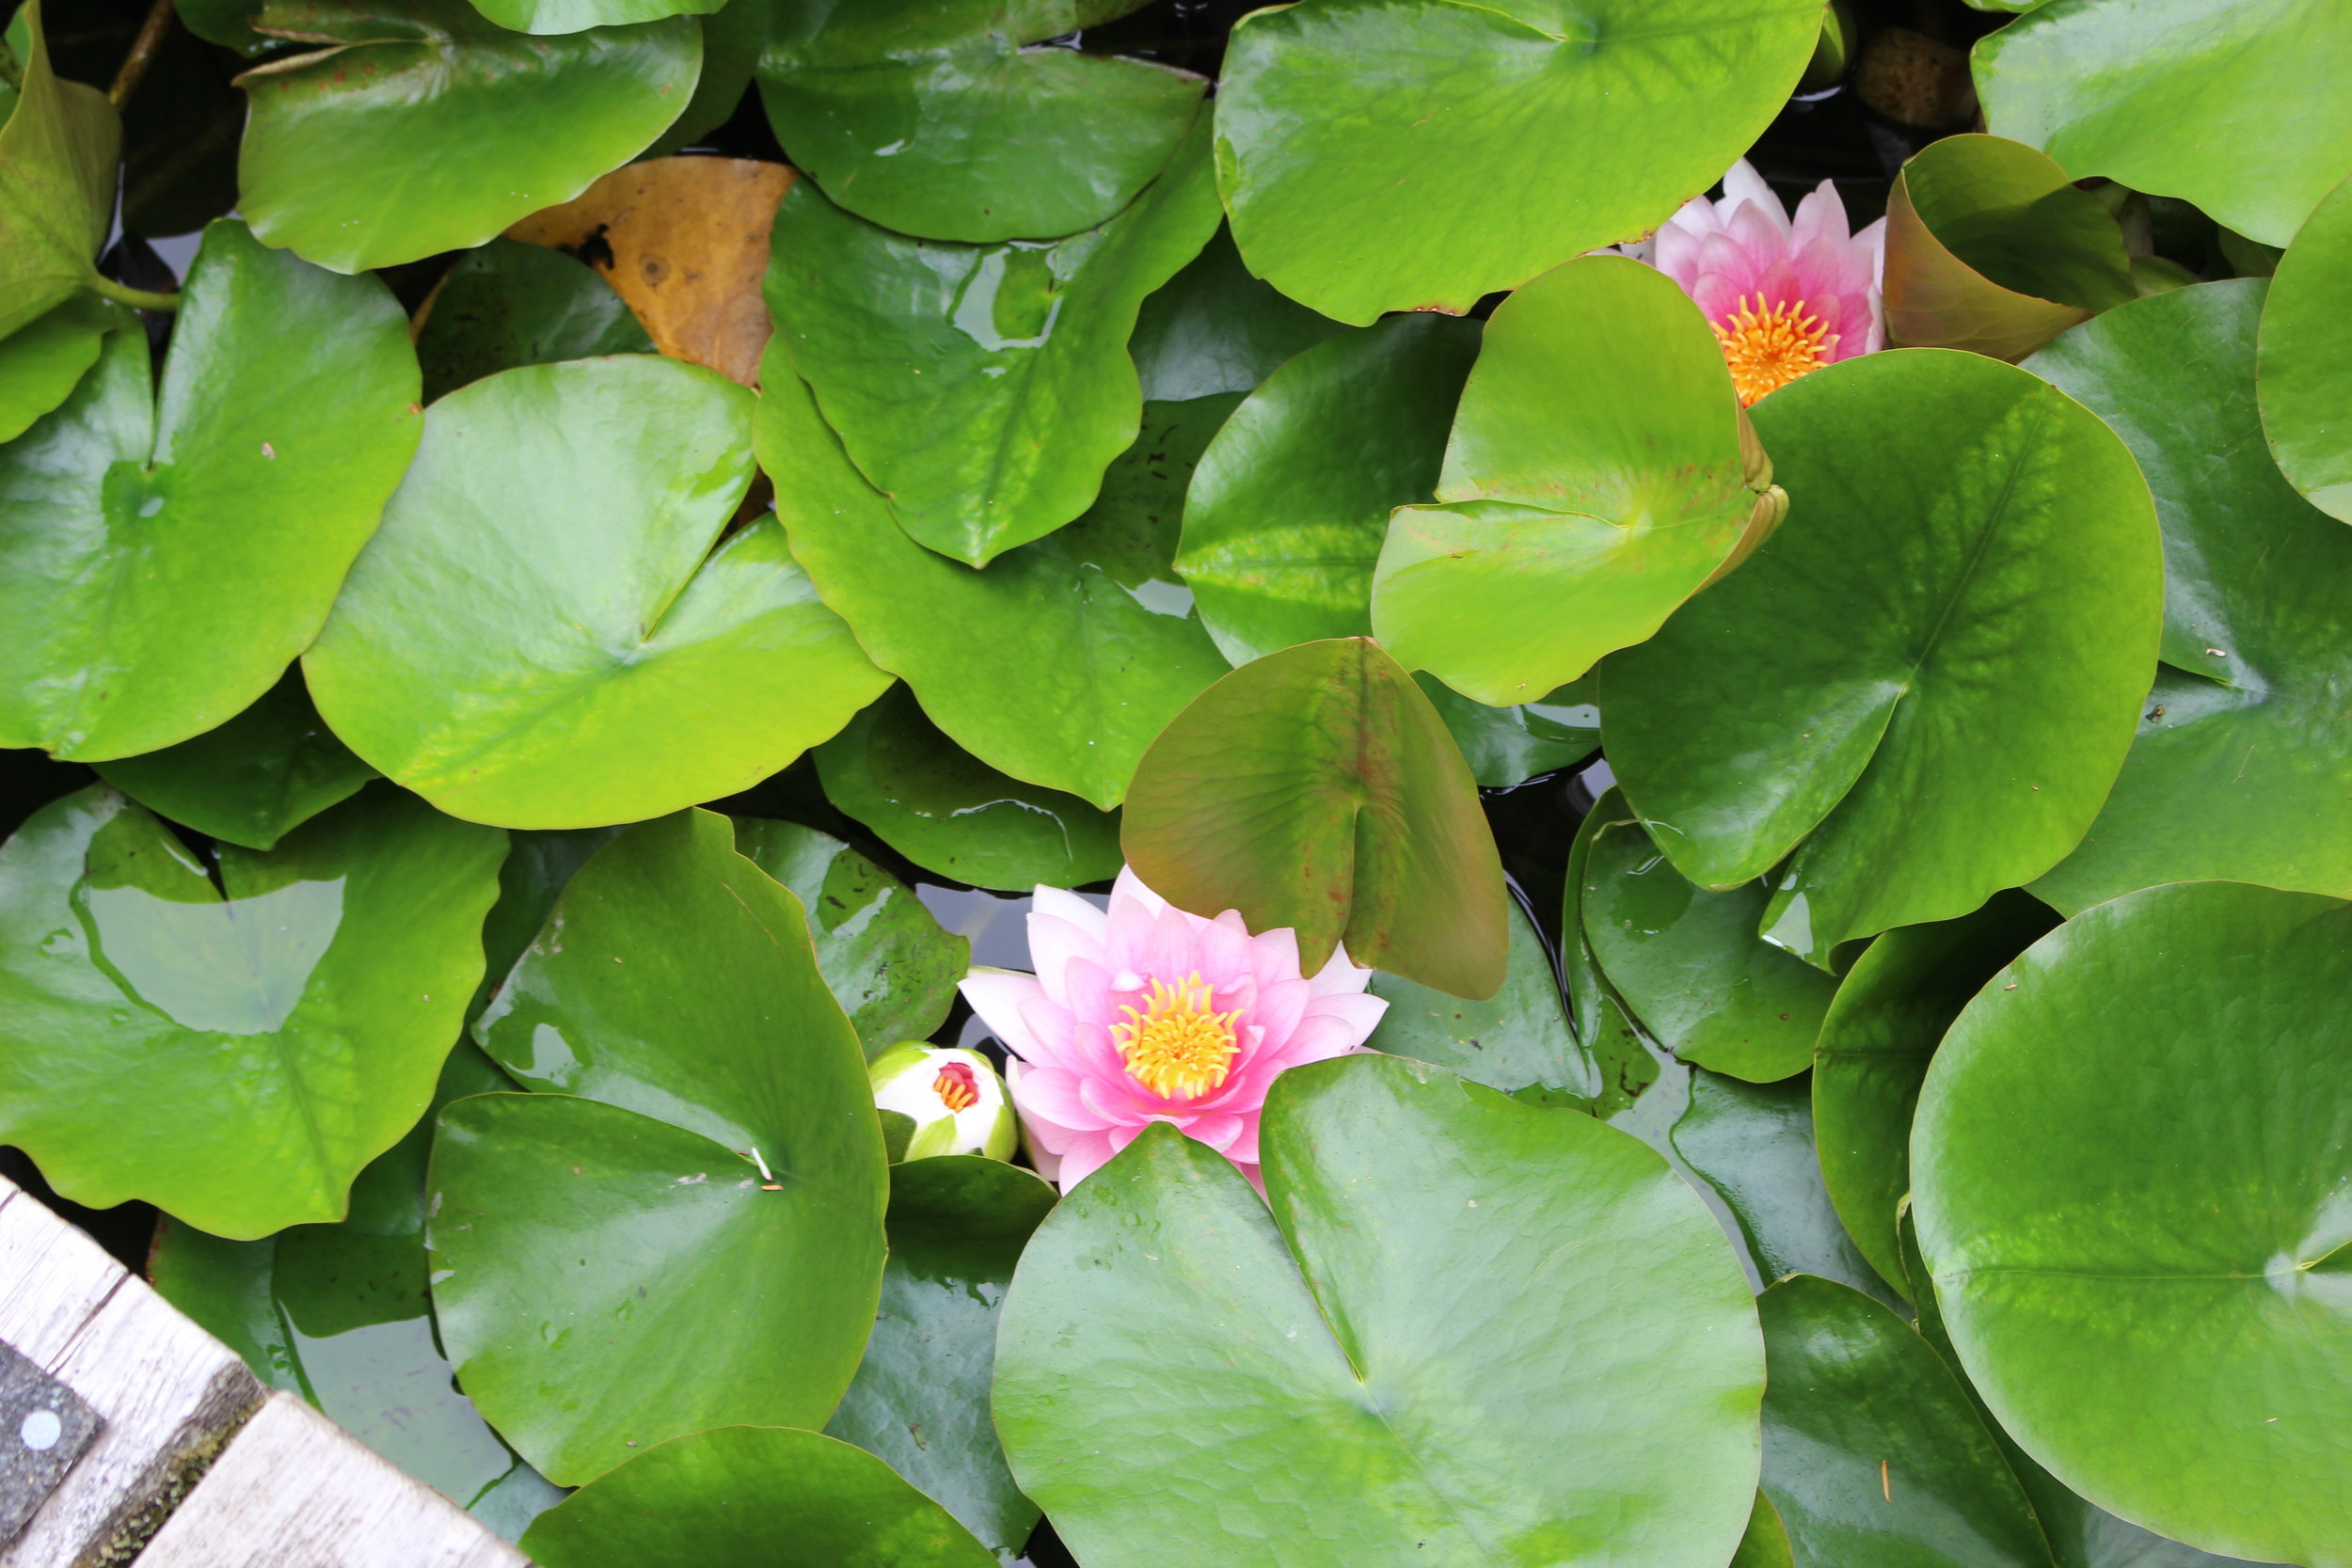 The lily pond would have been Monet's dream!